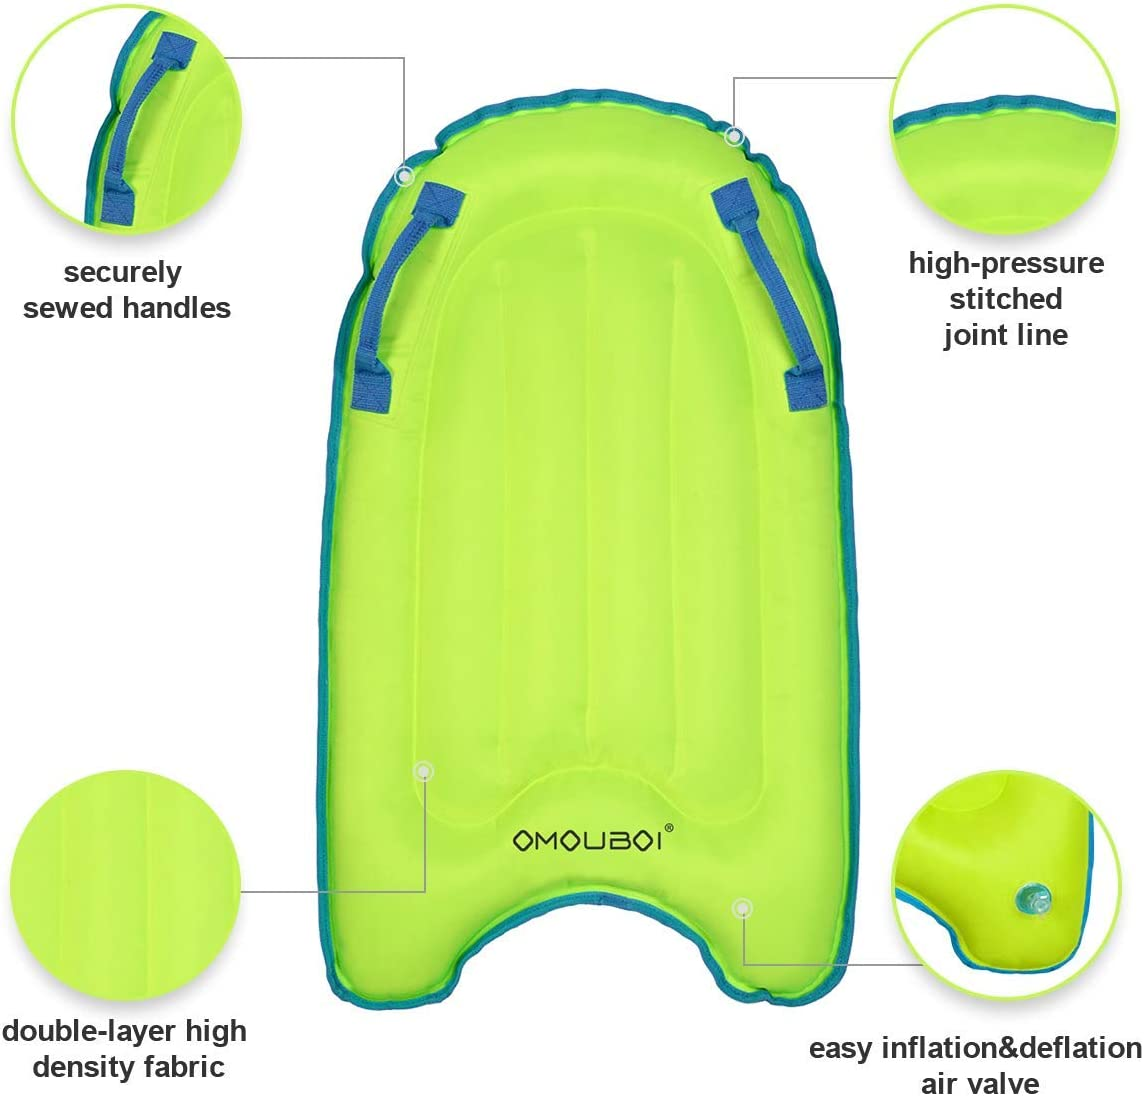 Amazon.com: OMOUBOI - Tabla de surf hinchable para niños ...